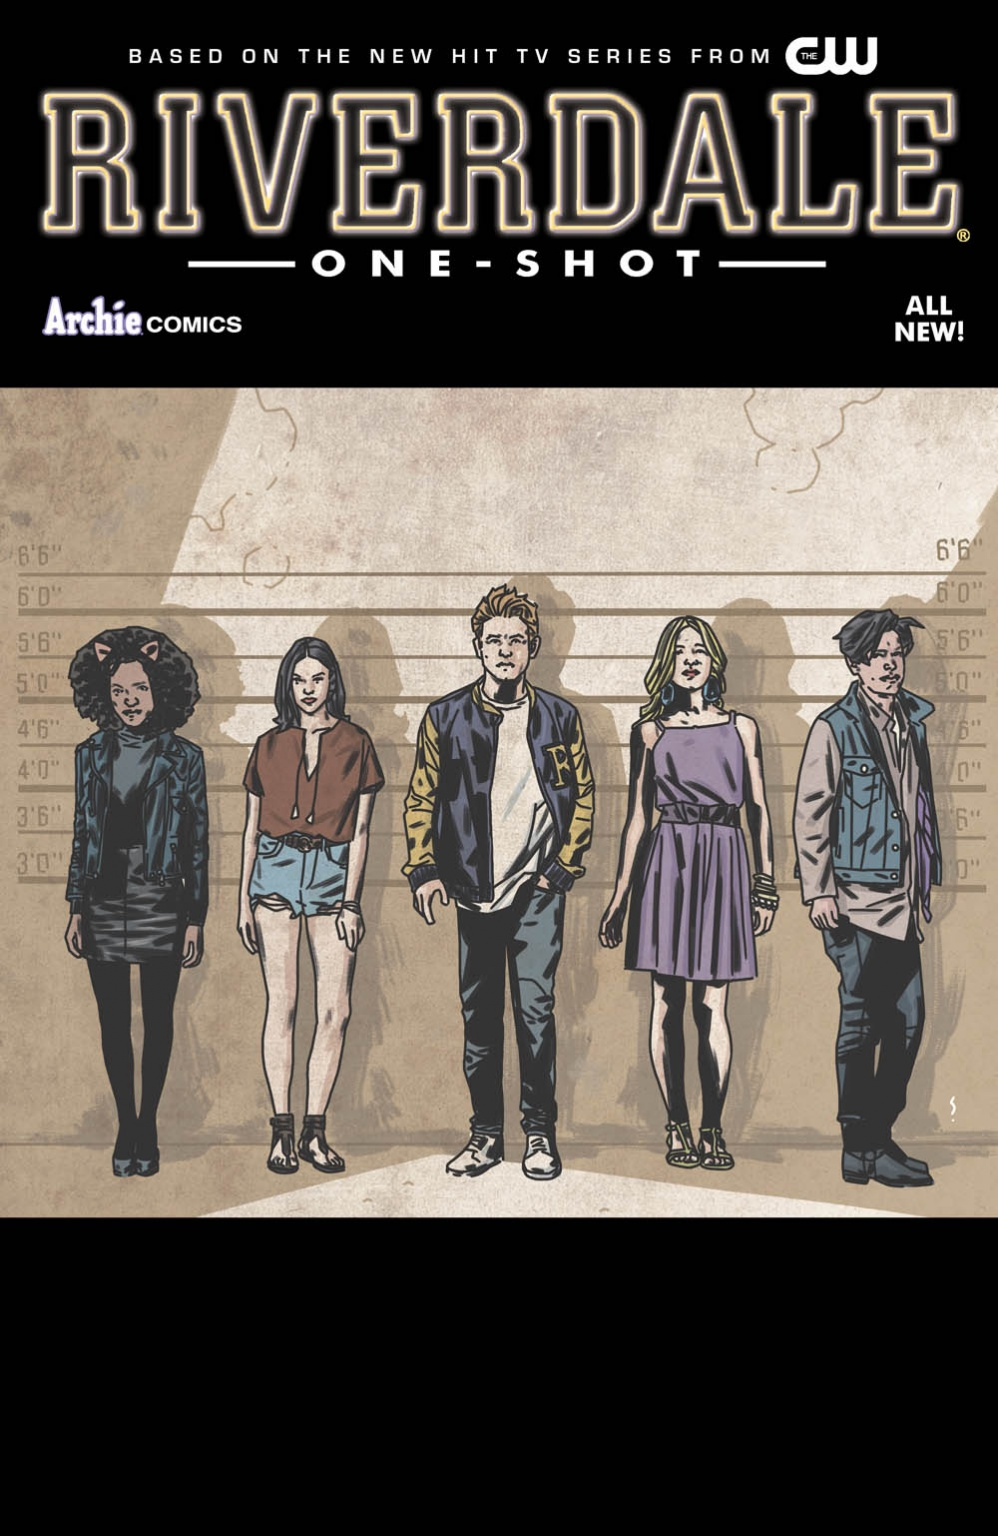 Riverdale One-Shot Cover 9